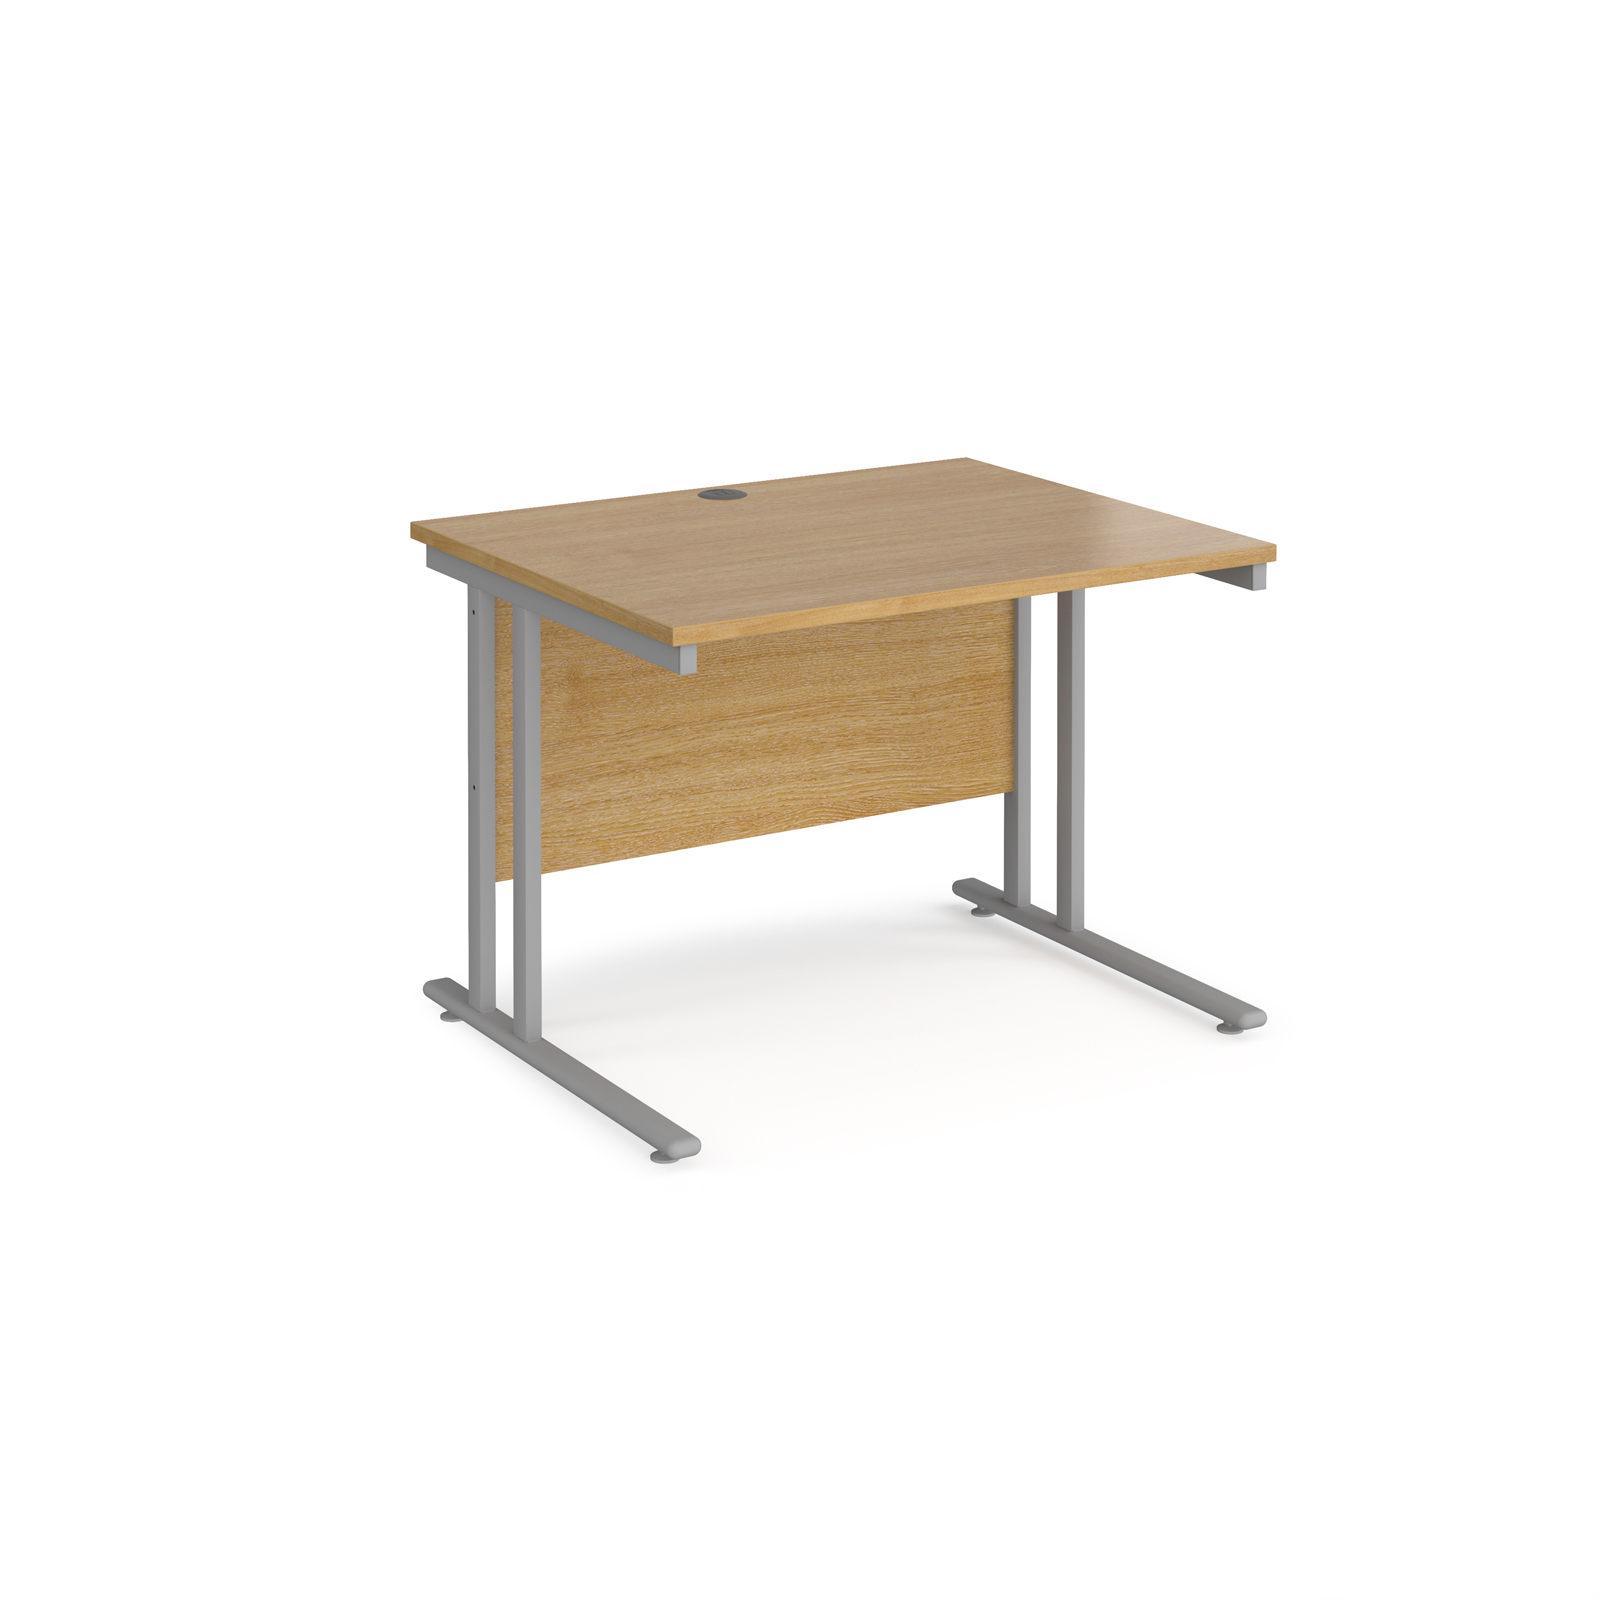 Rectangular Desks Maestro 25 straight desk 1000mm x 800mm - silver cantilever leg frame, oak top